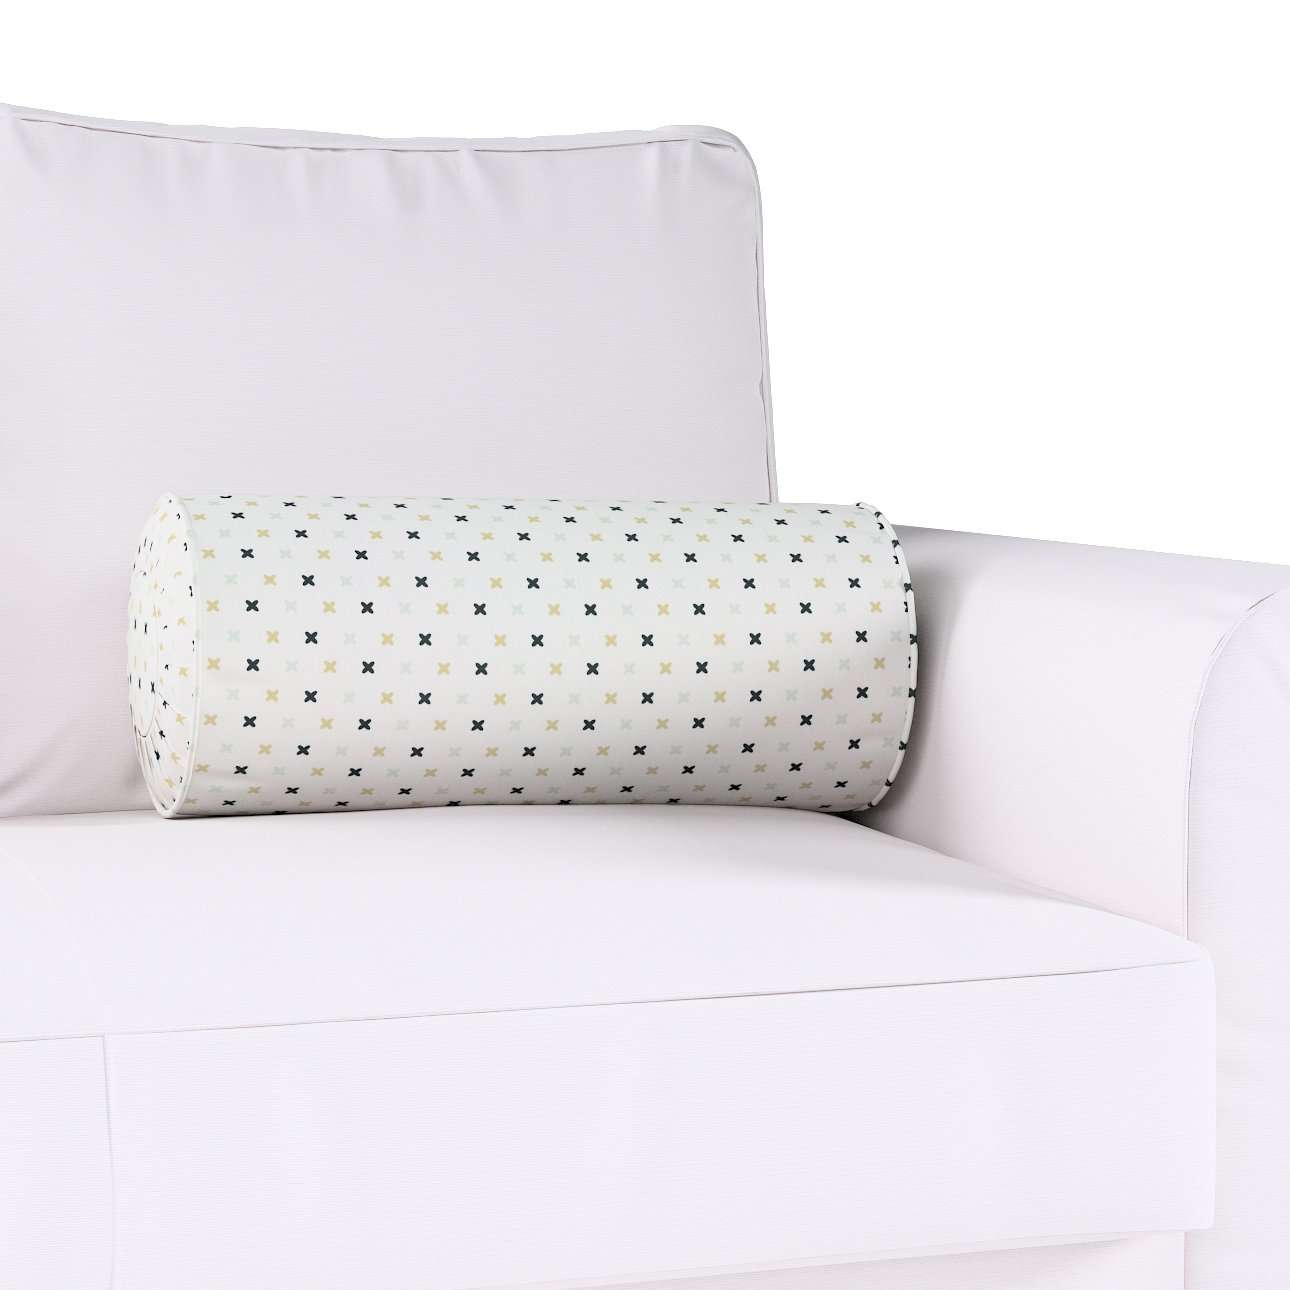 Bolster cushion with pleats in collection Adventure, fabric: 141-83